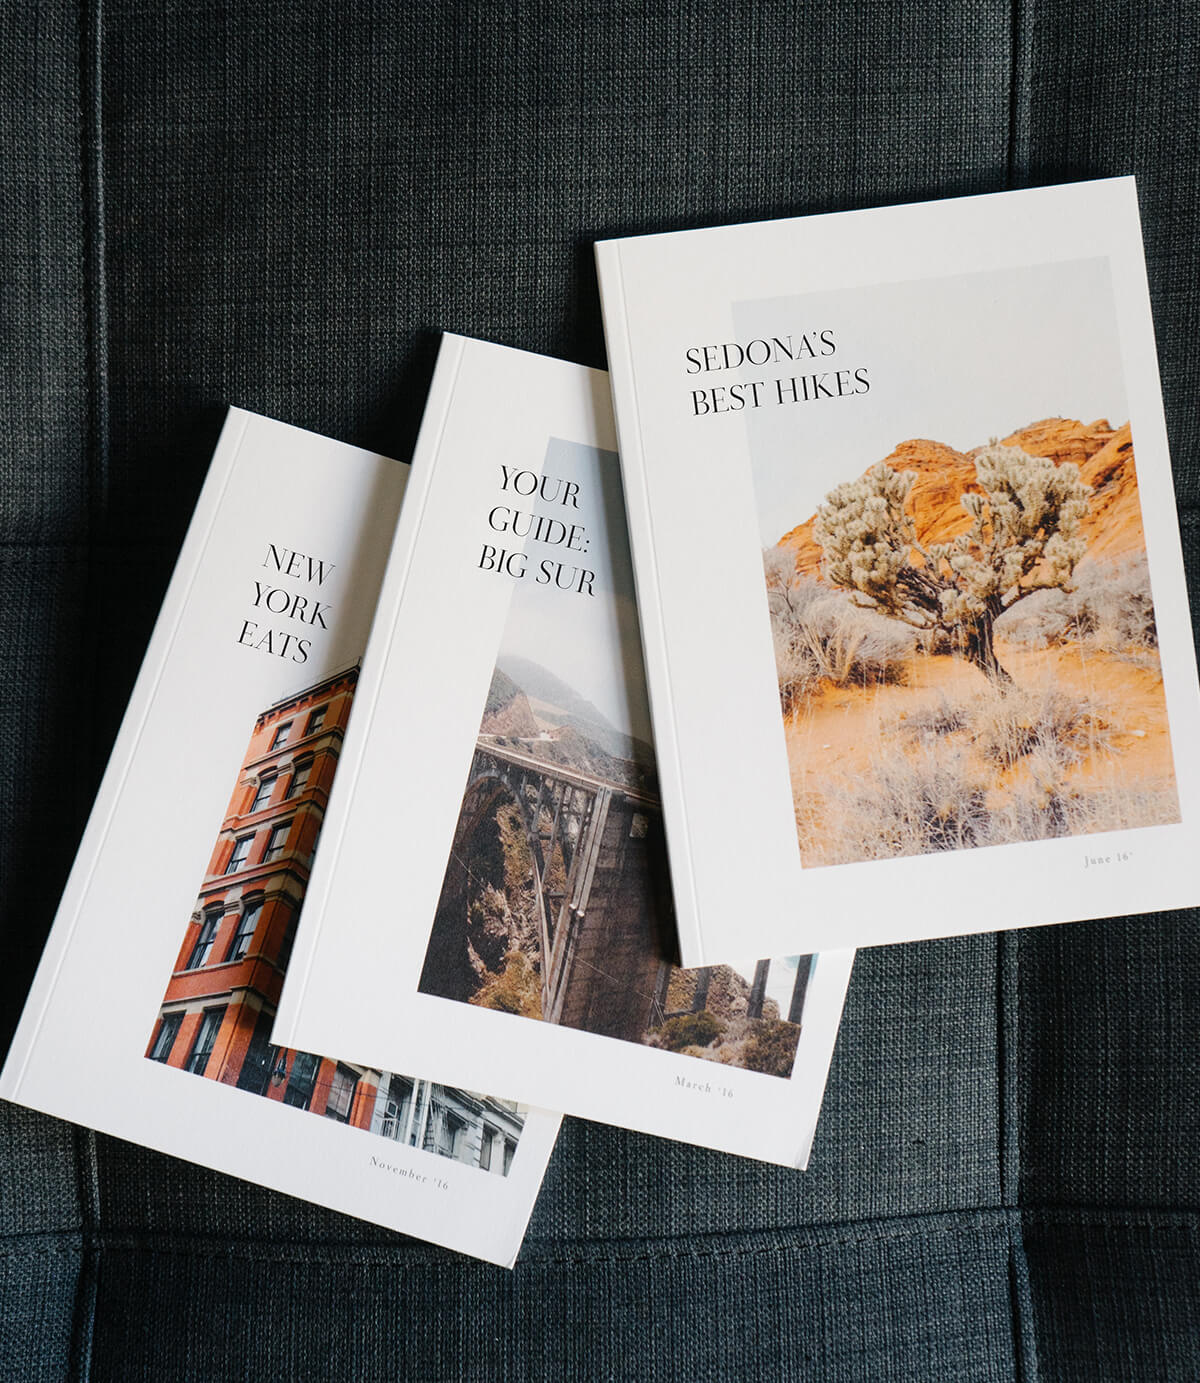 Custom-made city guides printed in softcover photo books